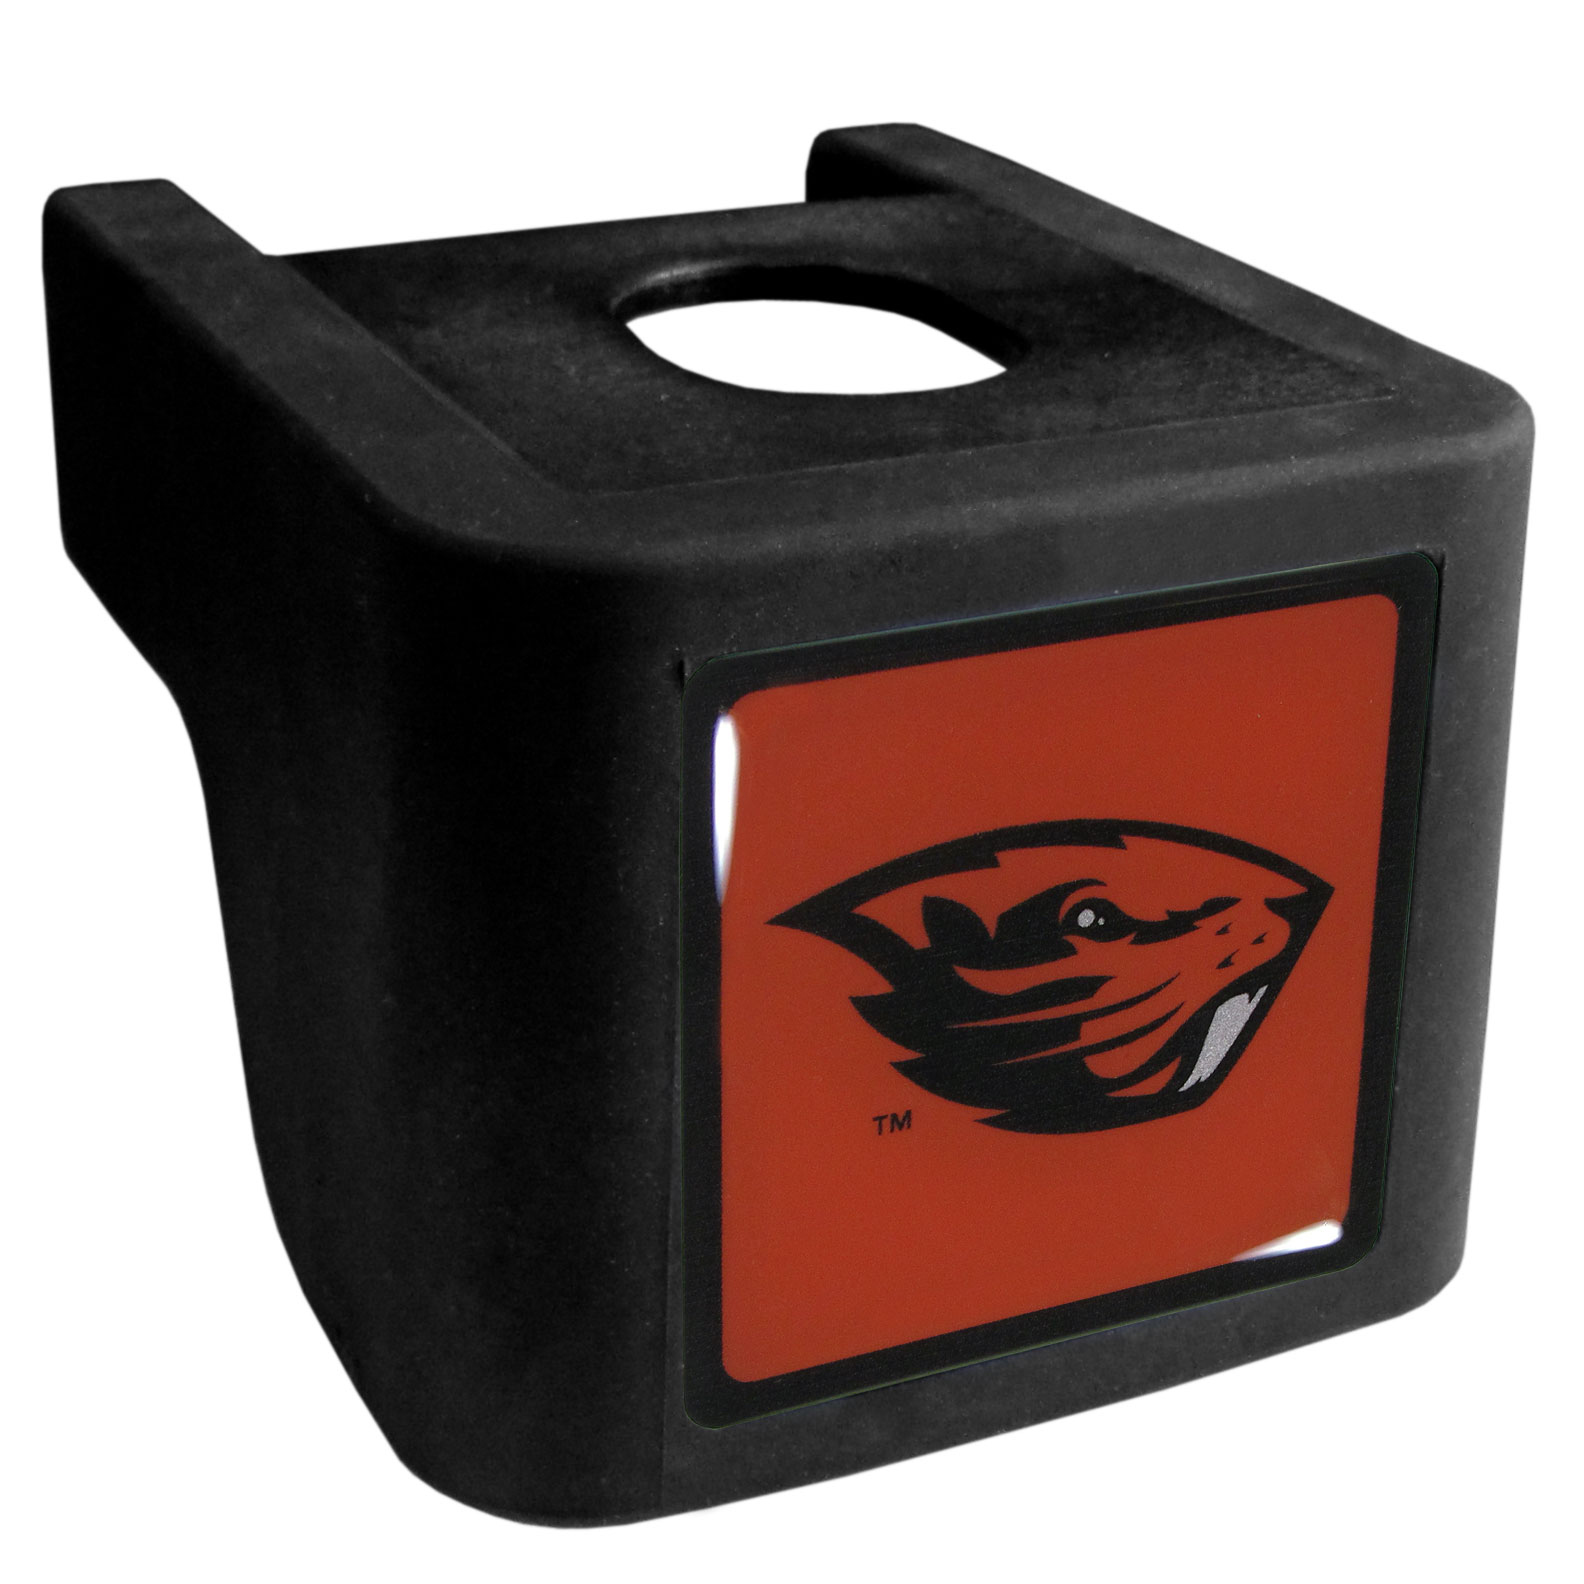 Oregon St. Beavers Shin Shield Hitch Cover - This unique hitch cover features a large Oregon St. Beavers logo. If you have ever hooked up a trailer or boat your have probably smashed your shins on the ball hitch a few times. This revolutionary shin shield hitch cover provides your much abused shins with the protection they deserve! The tough rubber hitch is rated to work with Class V hitch receivers hauling up to 17,000 gross trailer weight and 1,700 tongue weight allowing you to leave it on while hauling.